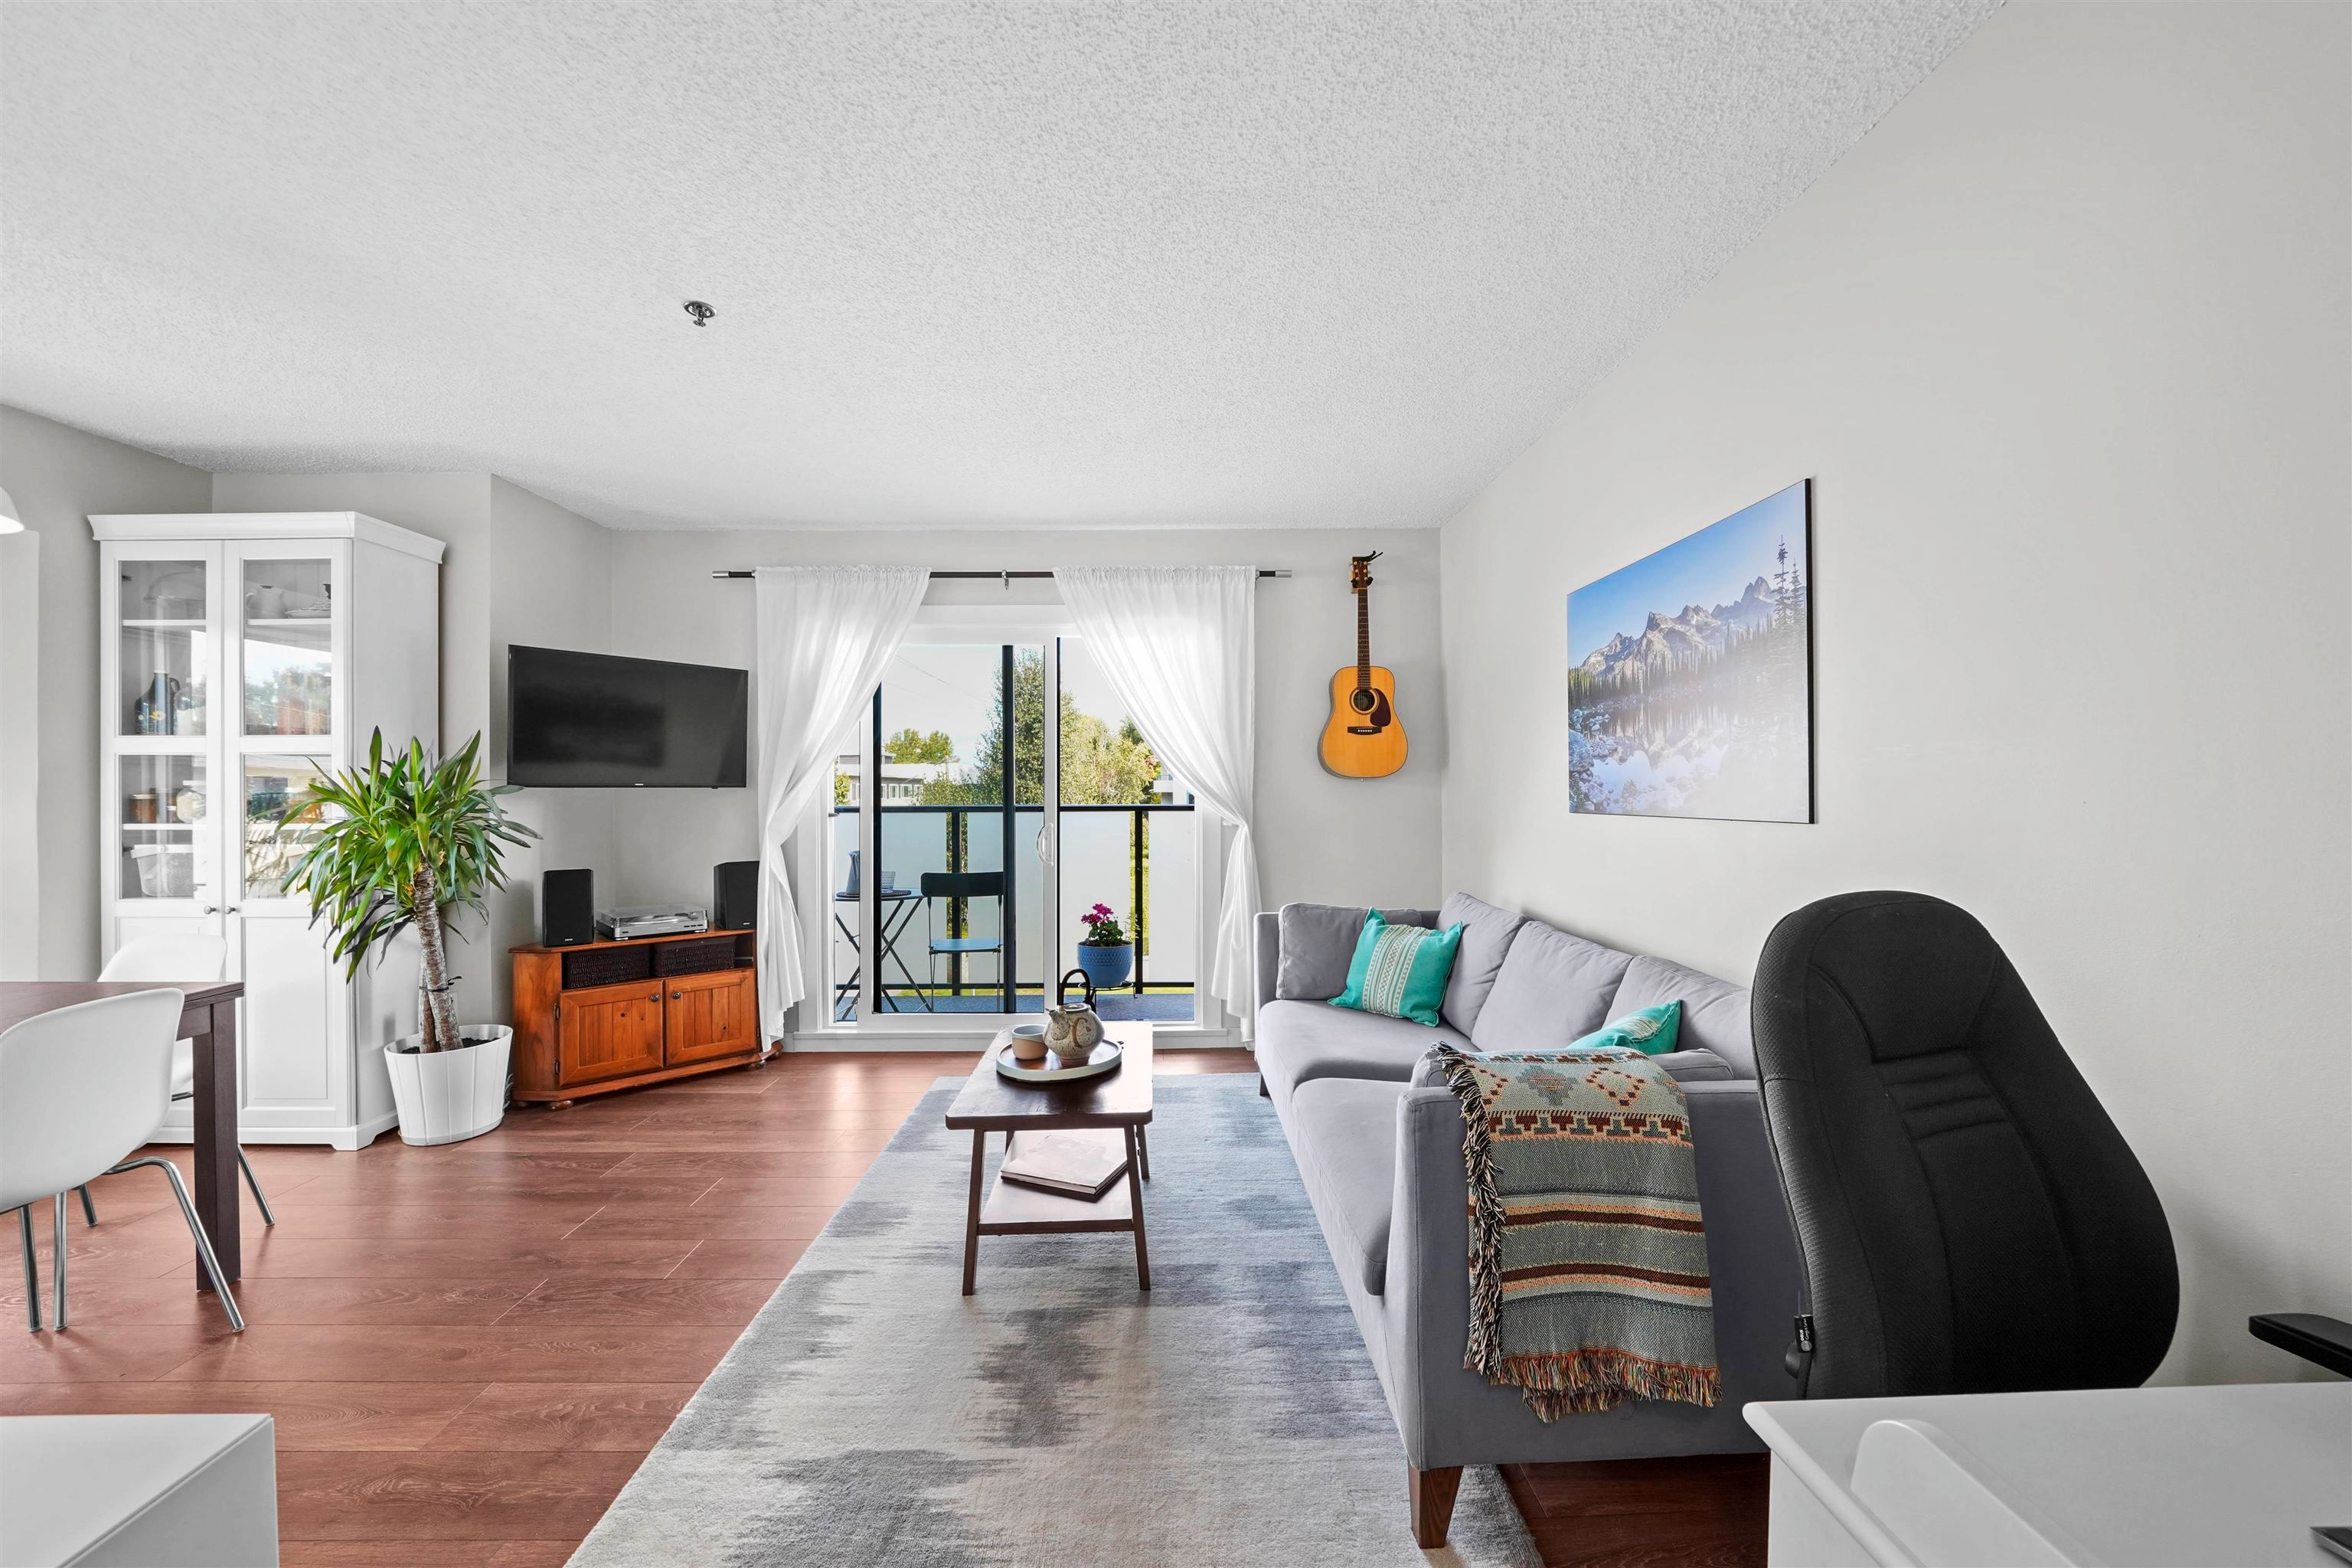 Main Photo: 206 1205 W 14TH Avenue in Vancouver: Fairview VW Townhouse for sale (Vancouver West)  : MLS®# R2614361